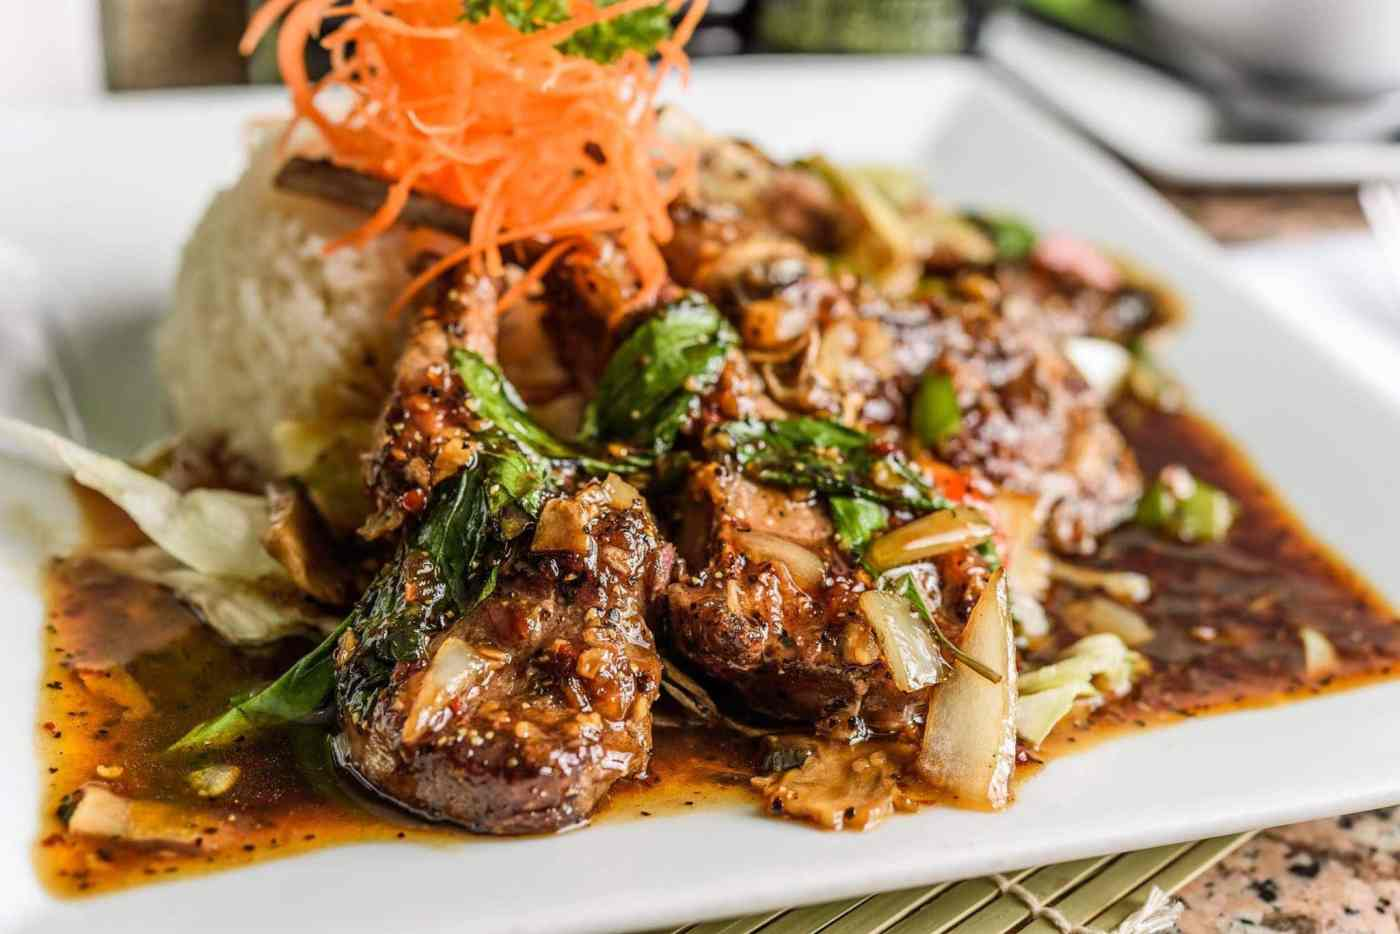 Bet you didn't know you could get Indonesian food at Nori Thai and Sushi